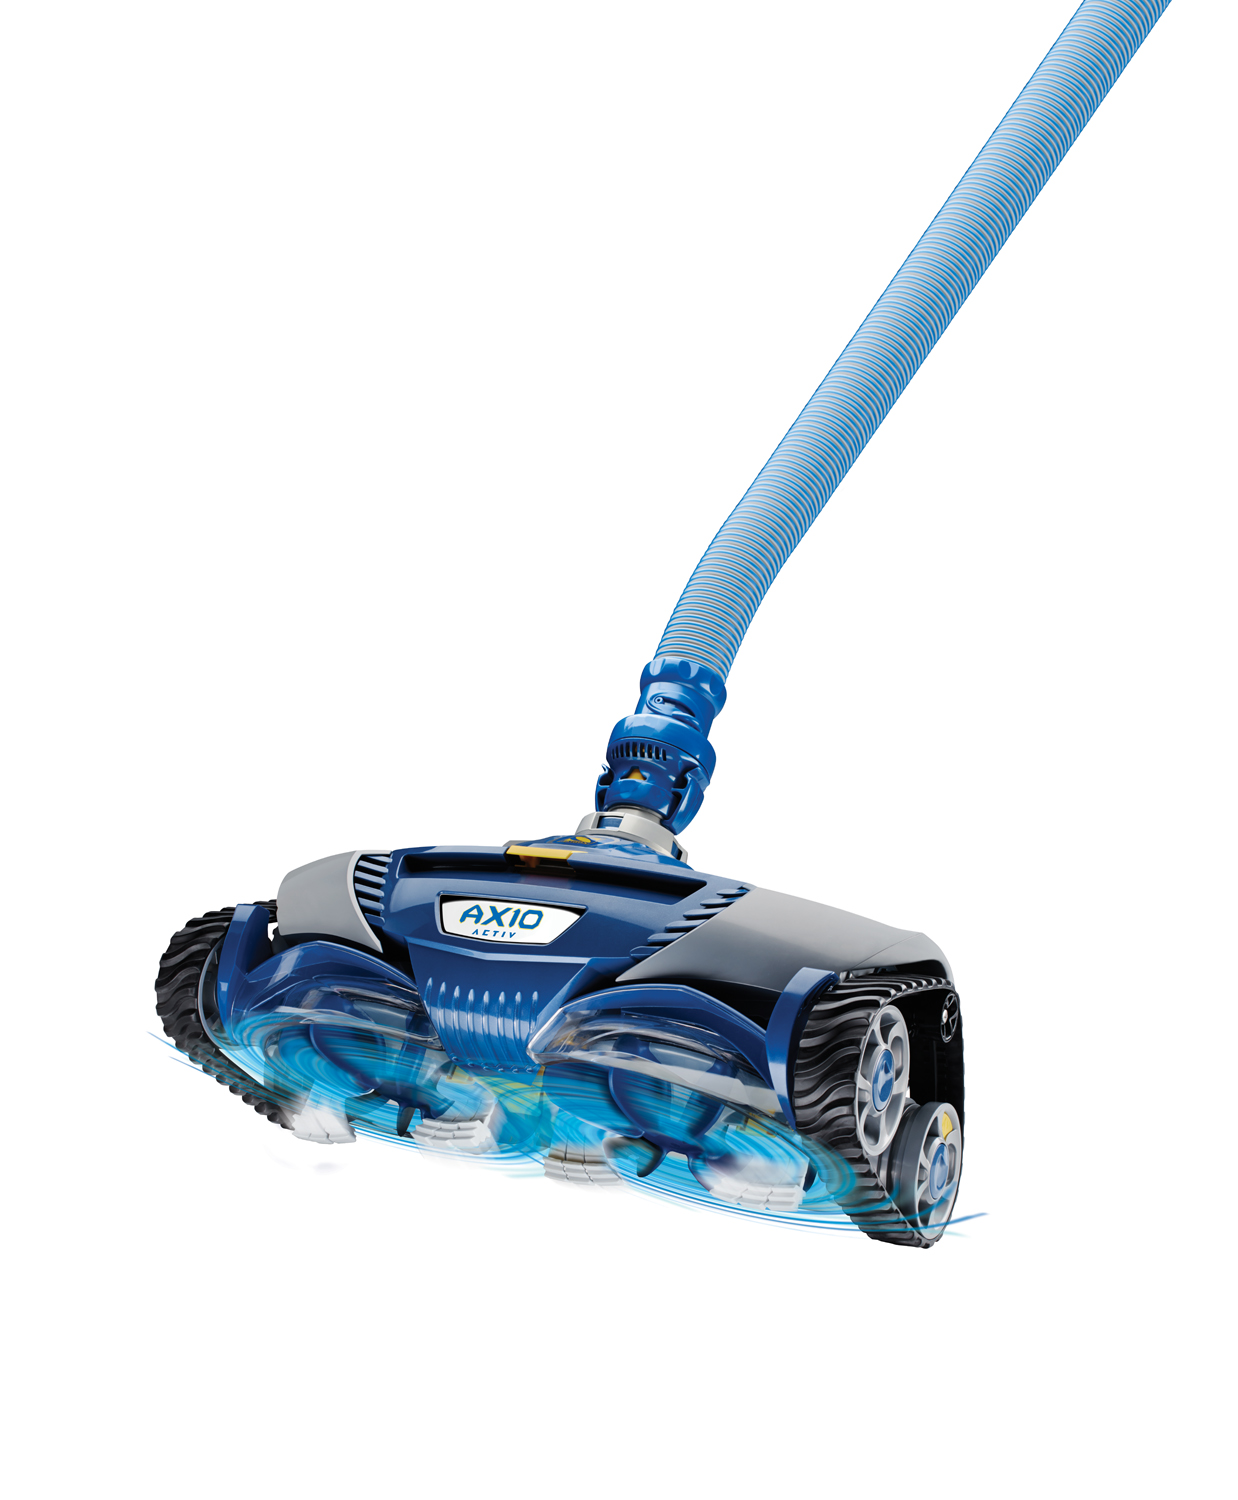 AX10 Activ cleaner image